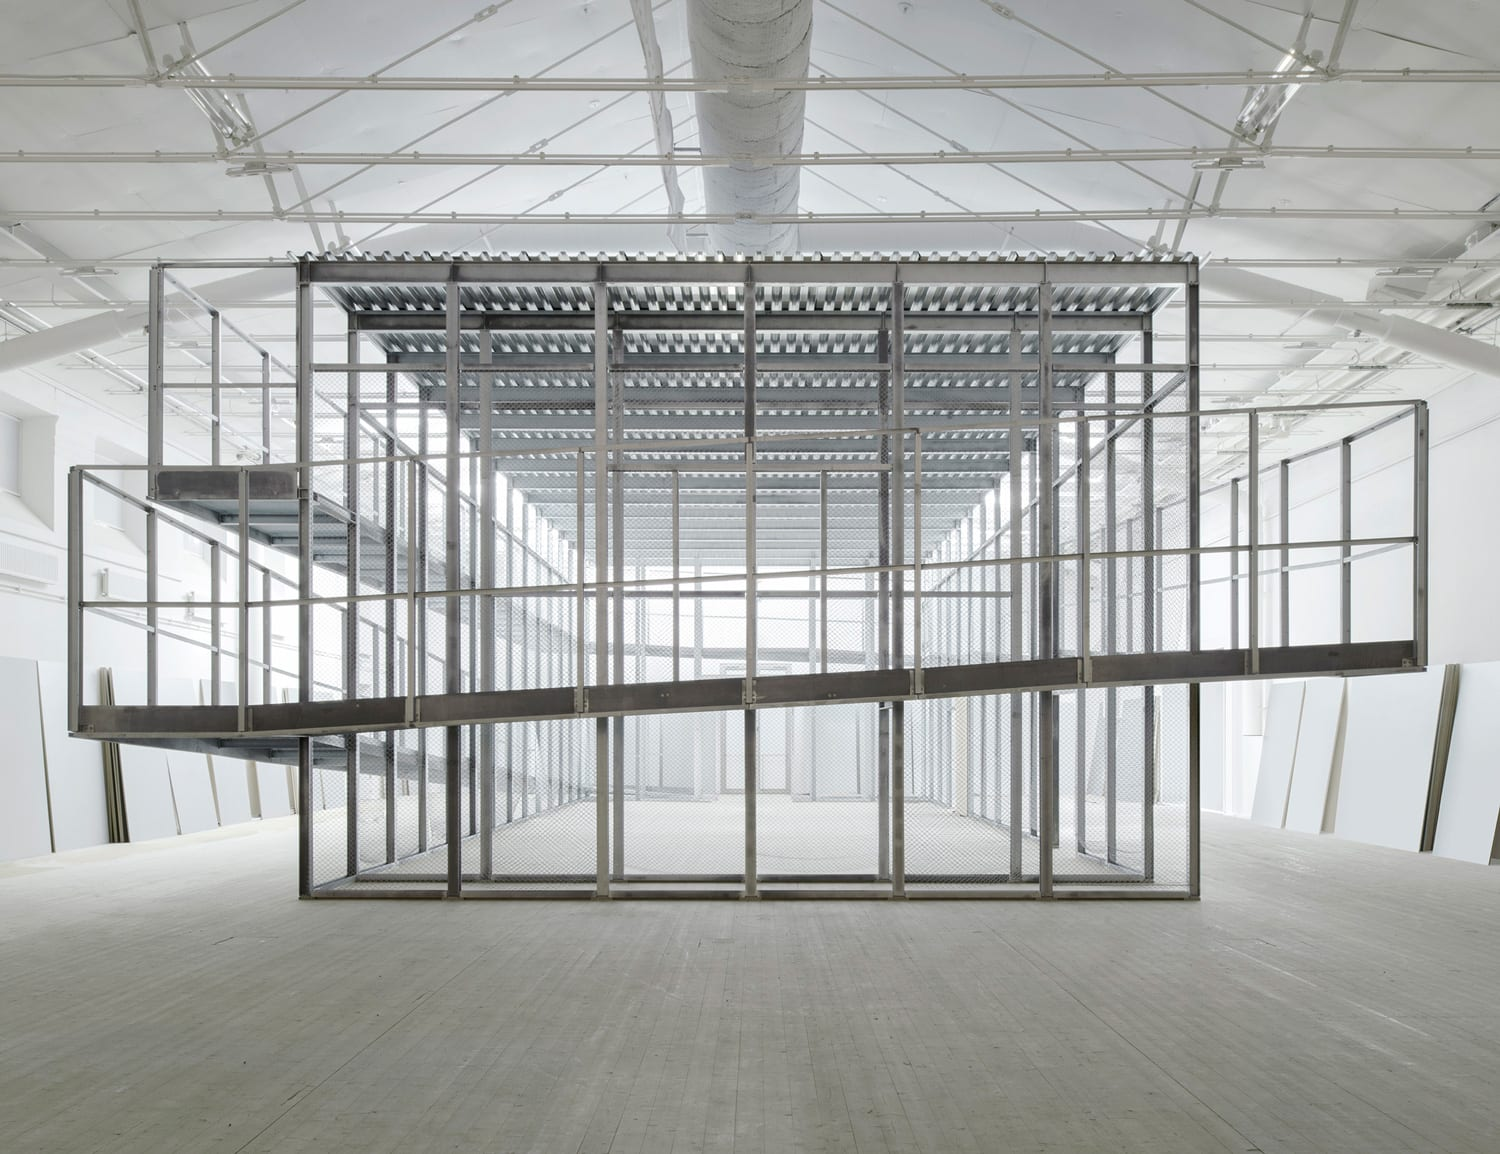 Boxen, New Gallery Space at ArkDes in Stockholm by Dehlin Brattgård Arkitekter | Yellowtrace